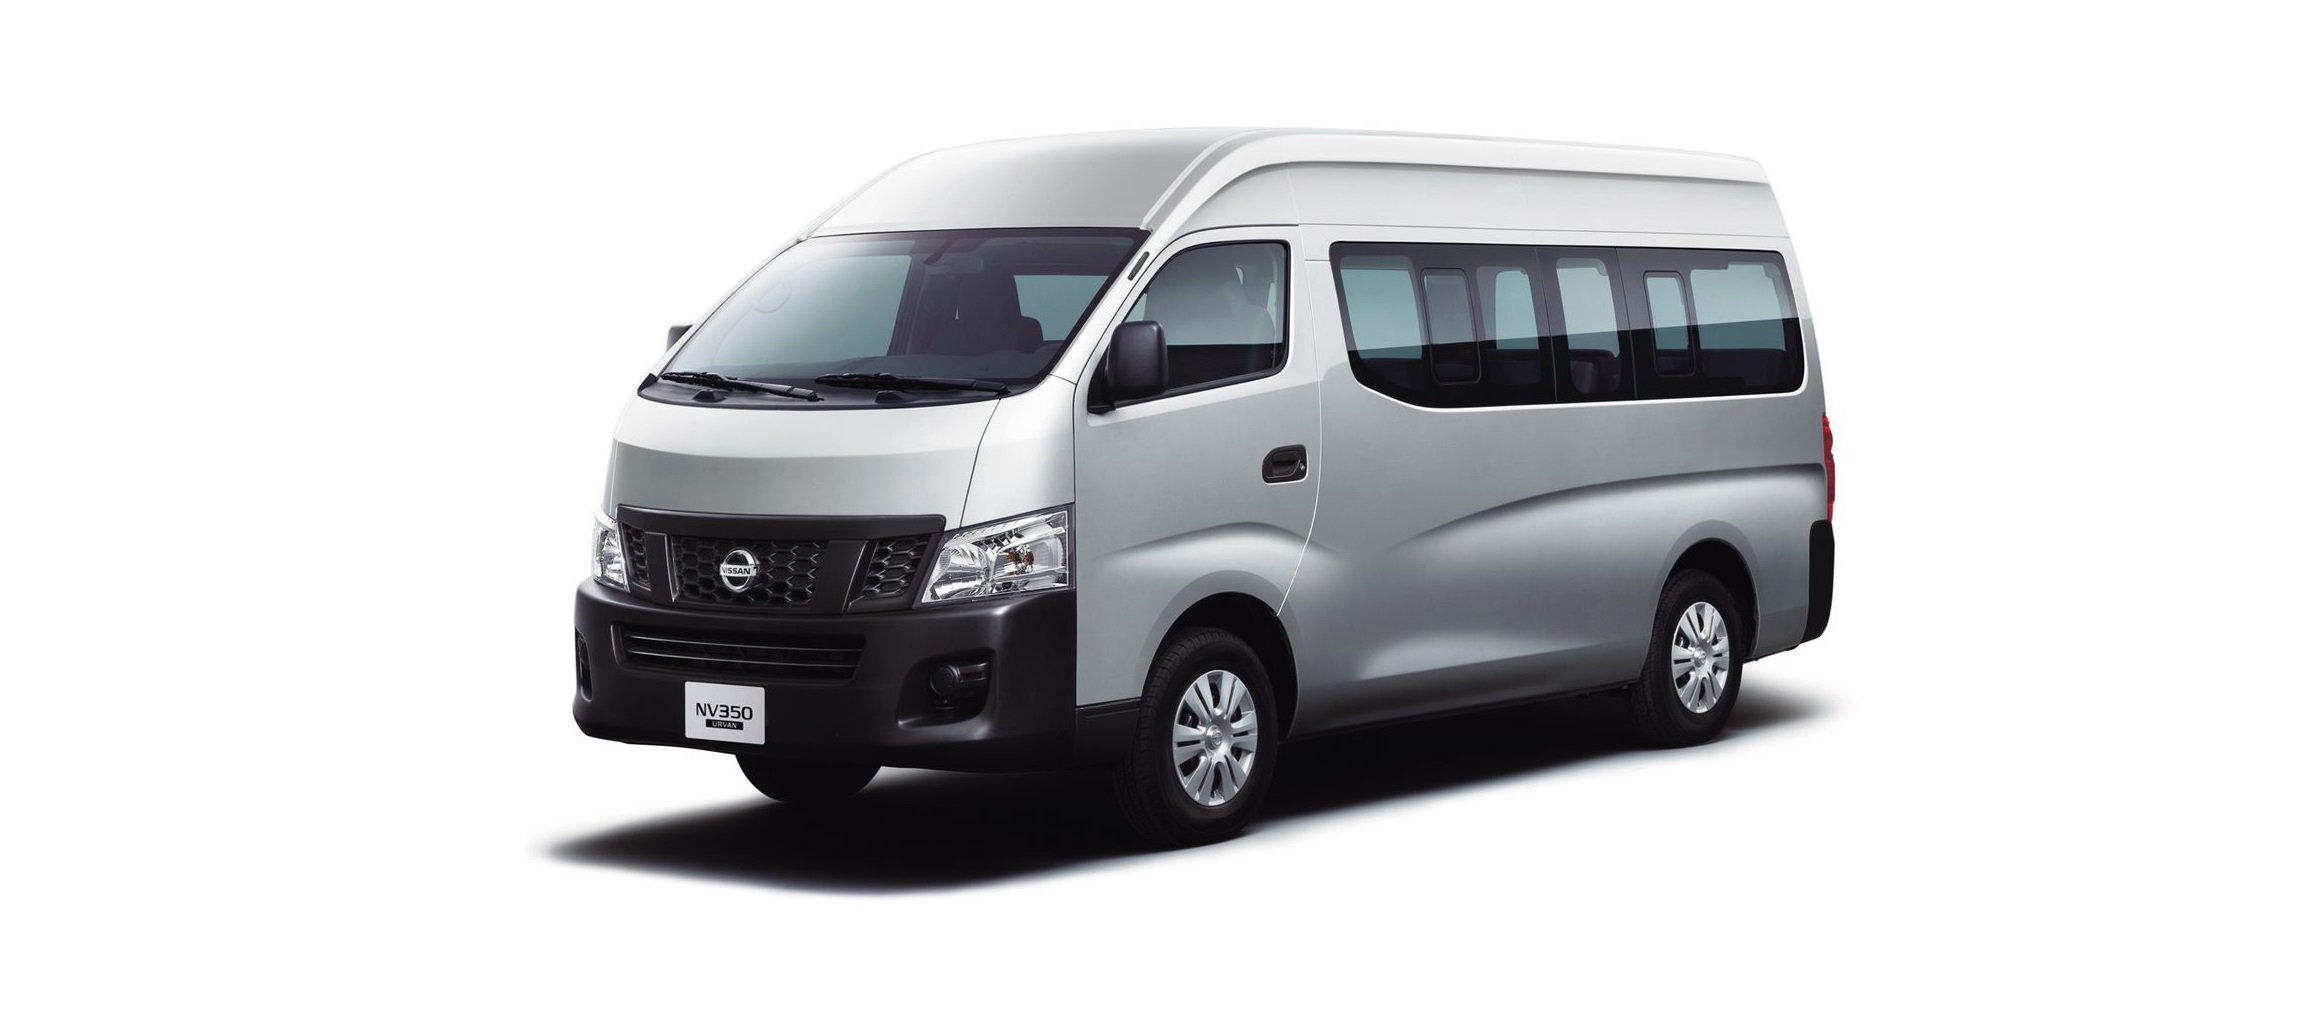 country seater for urvan premium years as the nissan popular enterprising exterior introduces philippines s second now maker passenger is most known of filipinos wheels well van brand